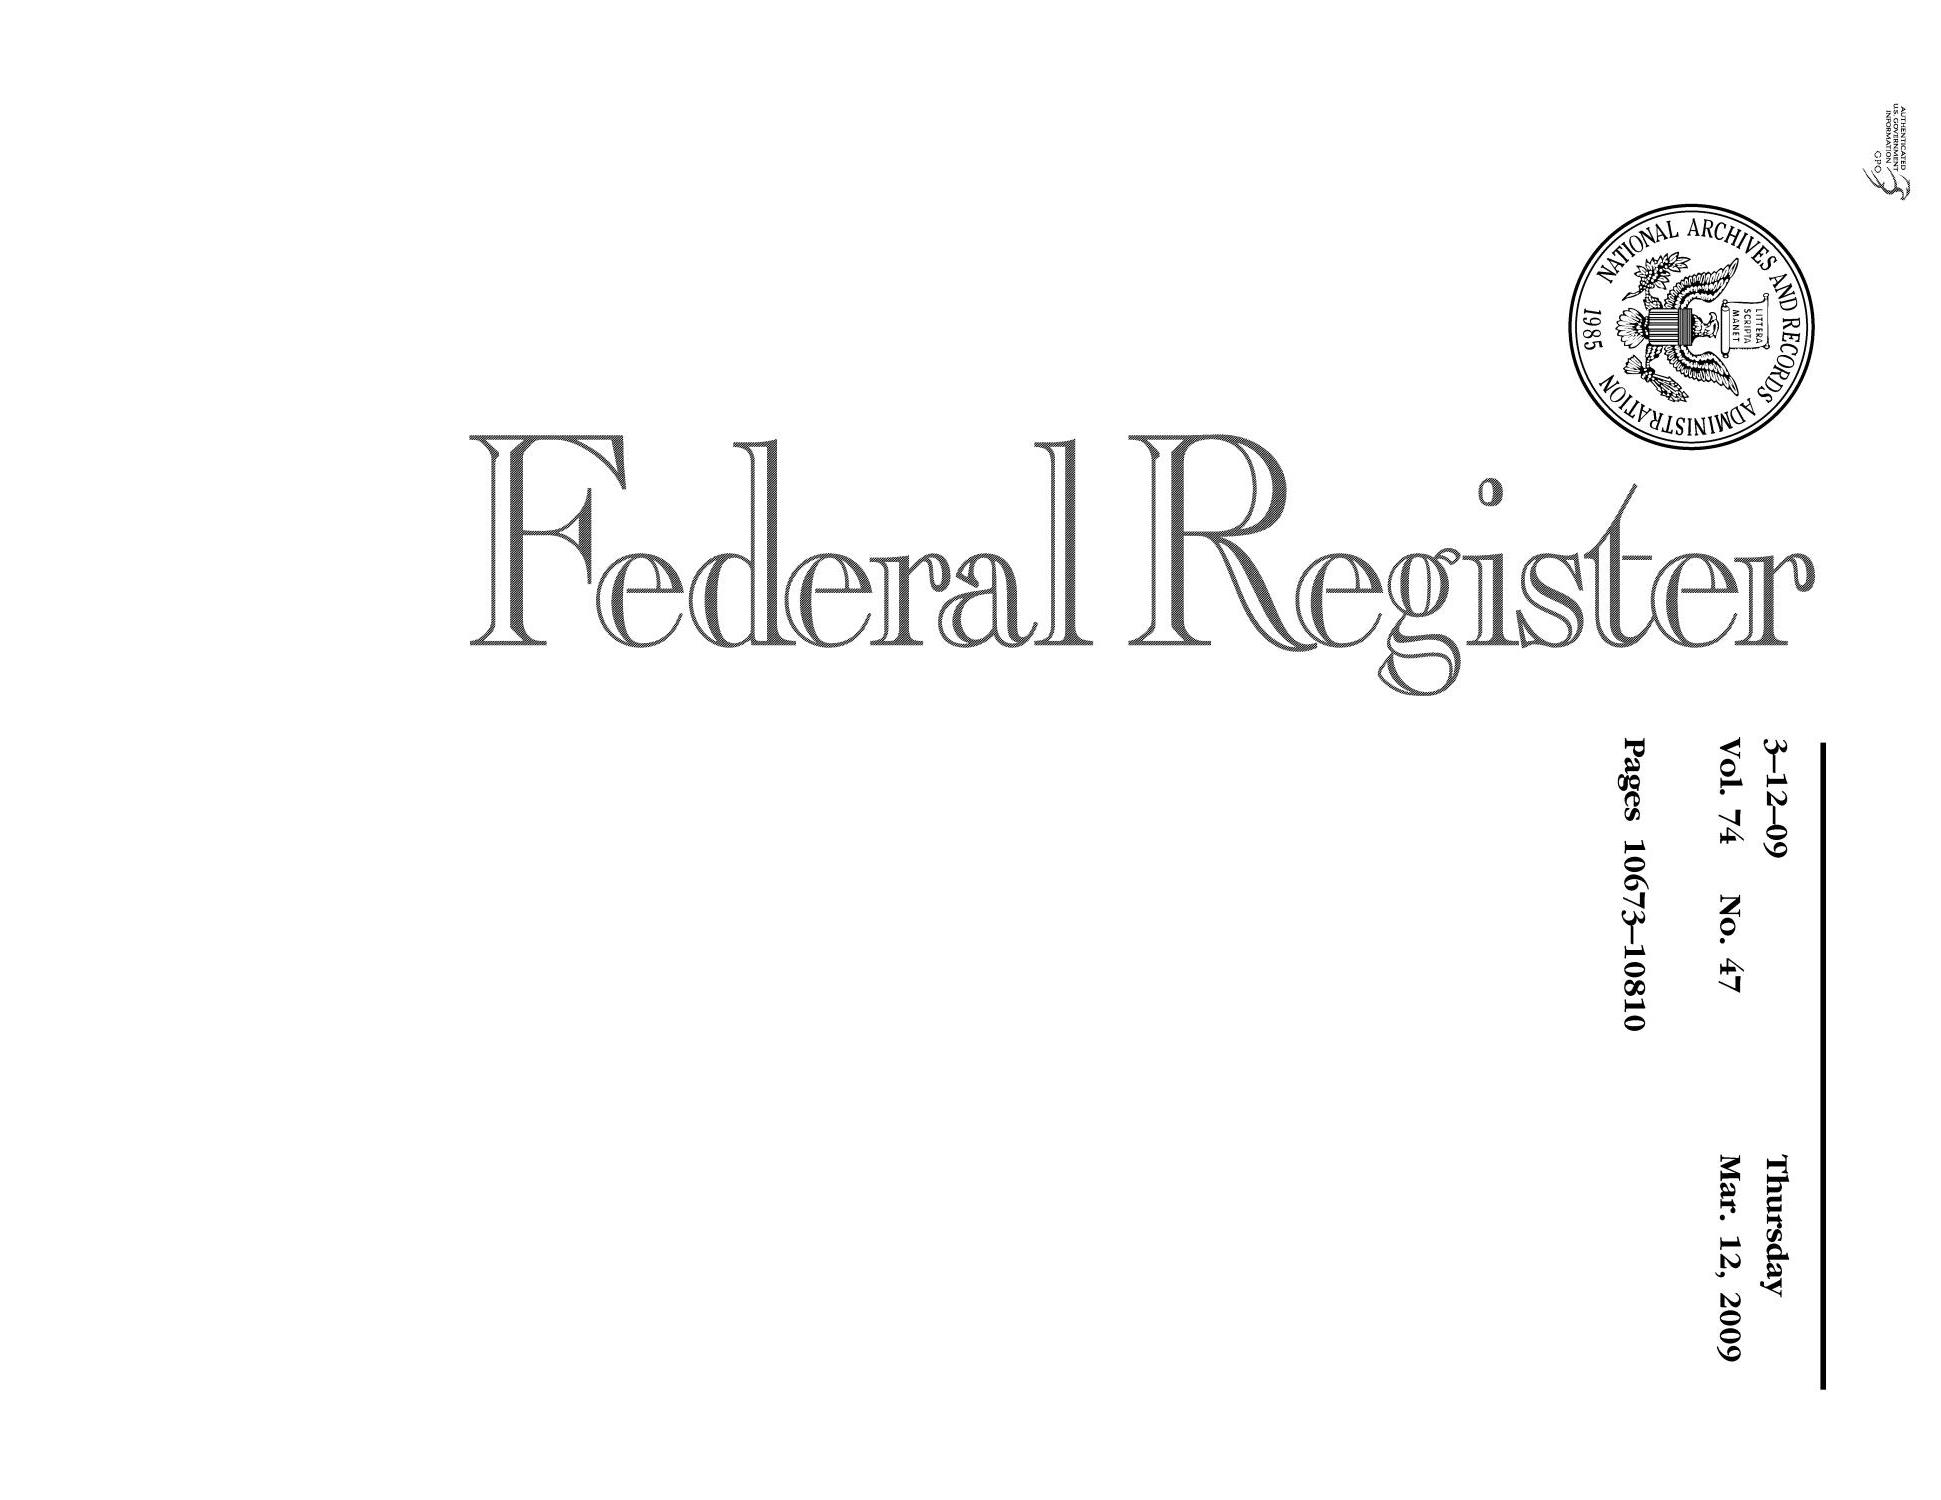 Federal Register, Volume 74, Number 47, March 12, 2009, Pages 10673-10810                                                                                                      Title Page